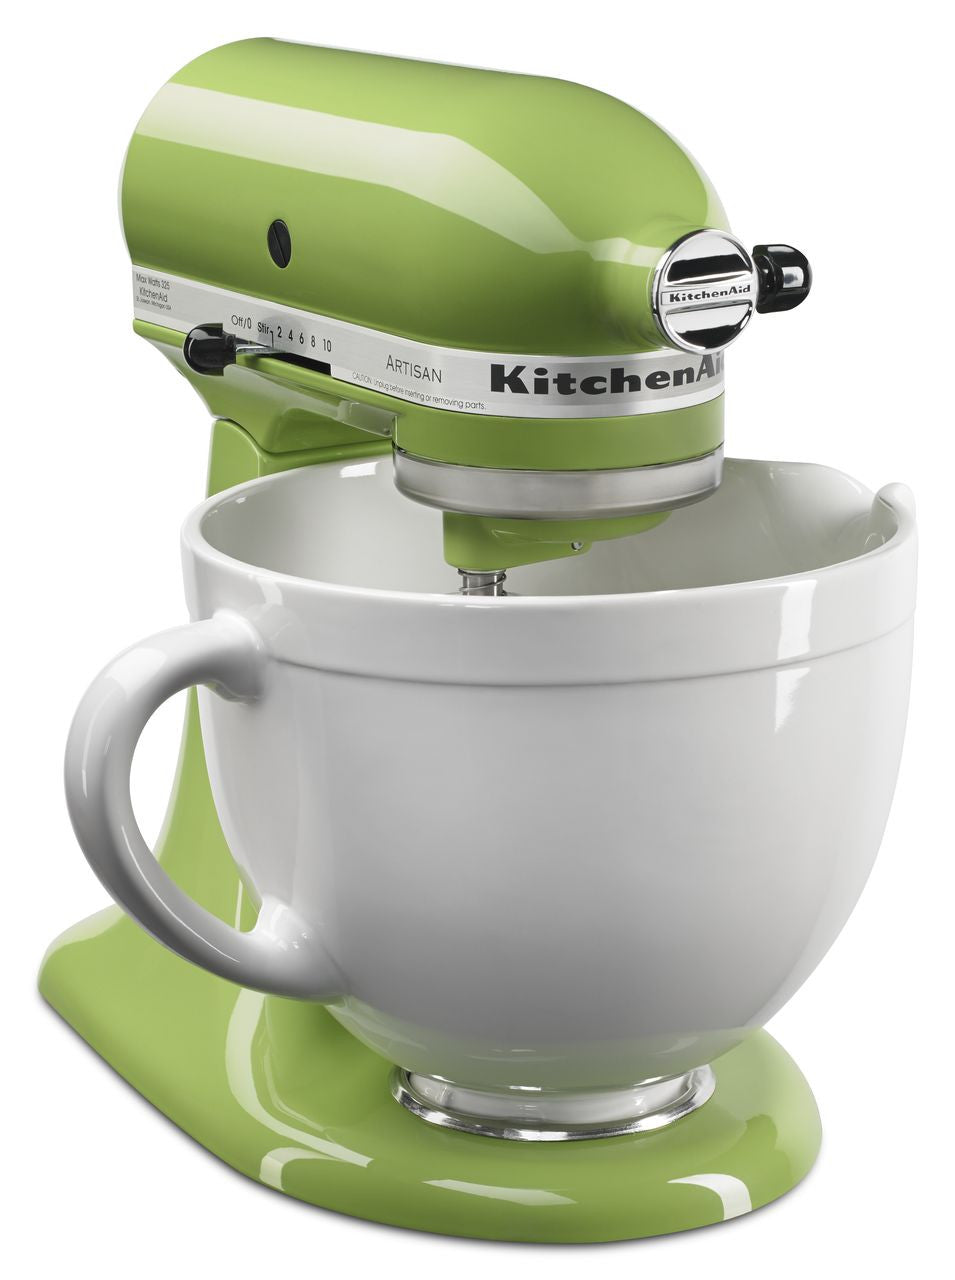 Kitchenaid 5 Qt. Artisan Series with Pouring Shield - Green ...